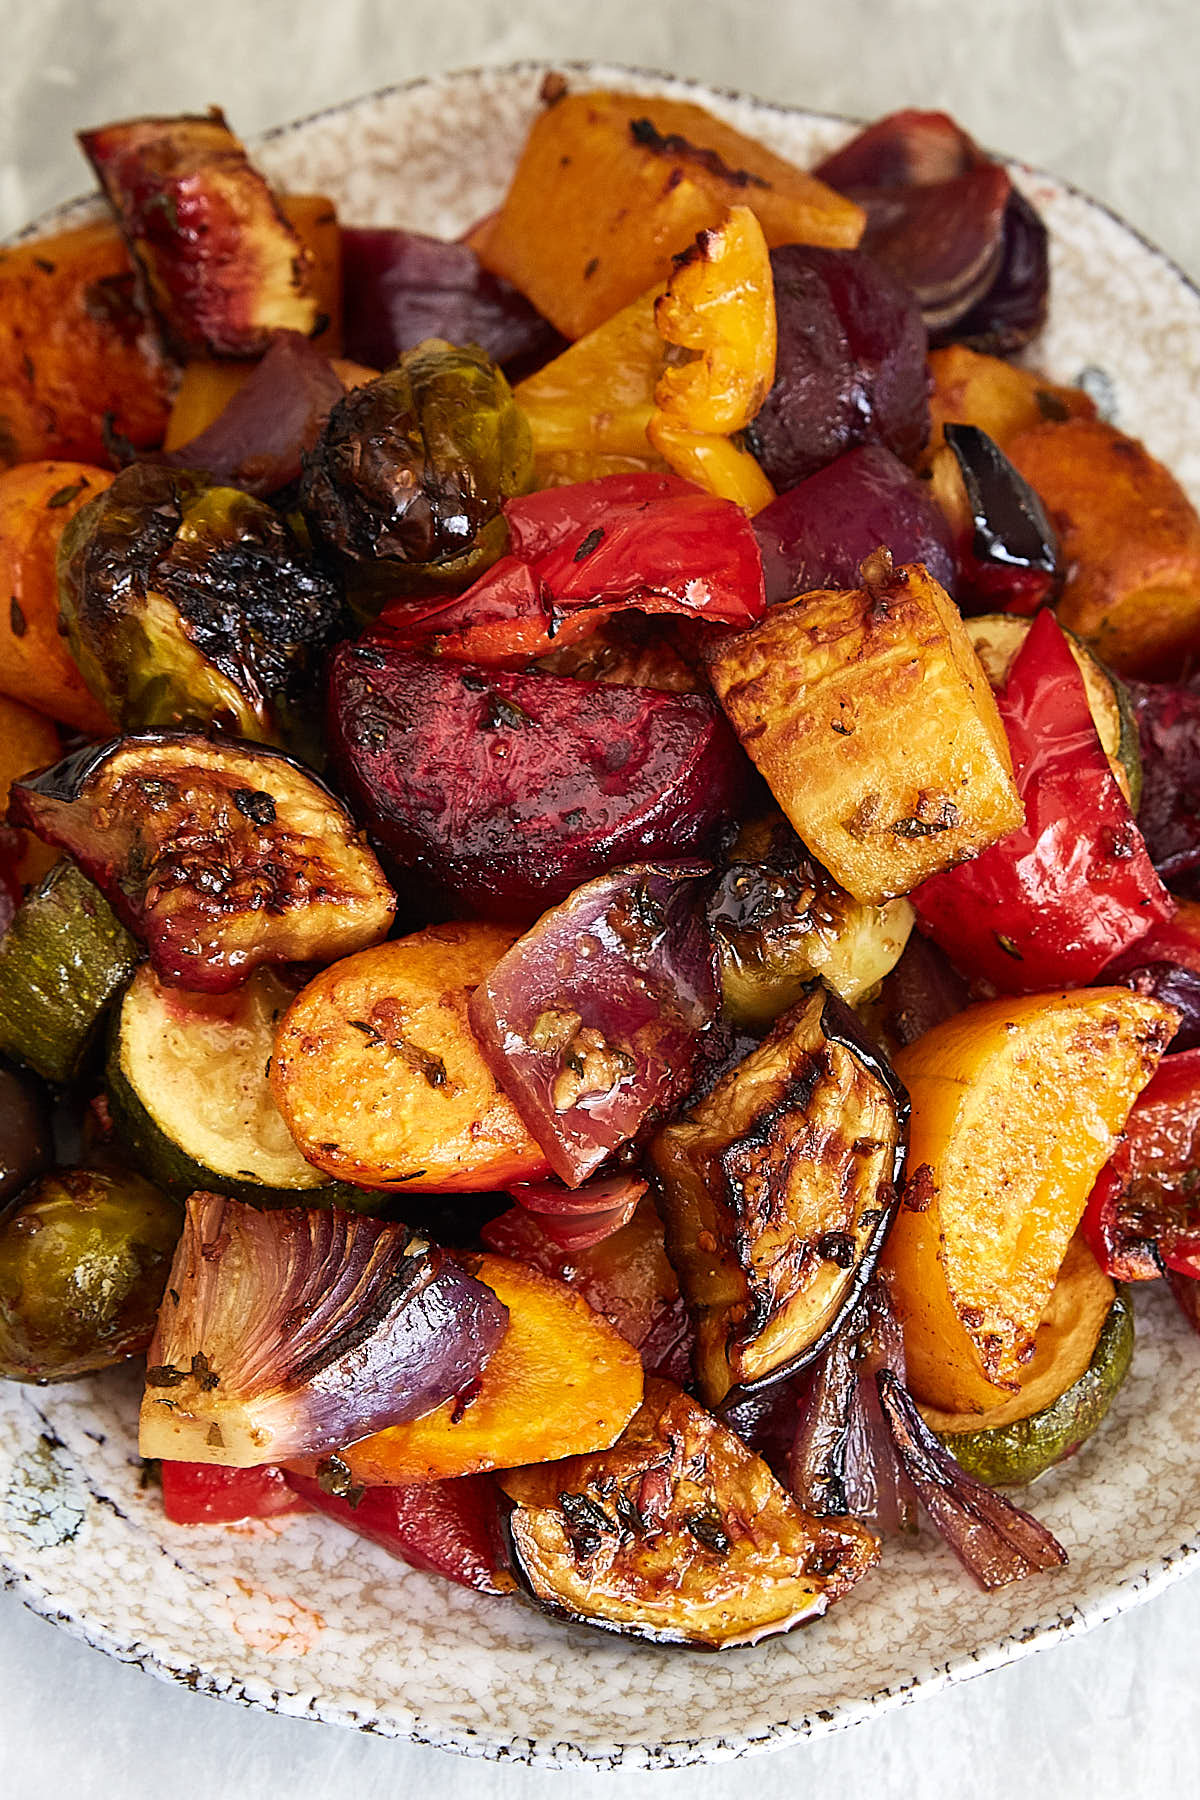 he best oven roasted vegetables ever! Made quickly and effortlessly. Every vegetable is cooked to perfection. | ifoodblogger.com #roastedvegetables #vegan #vegetarian #lowcarb #healthyrecipes #roastedveg #ovenroasted